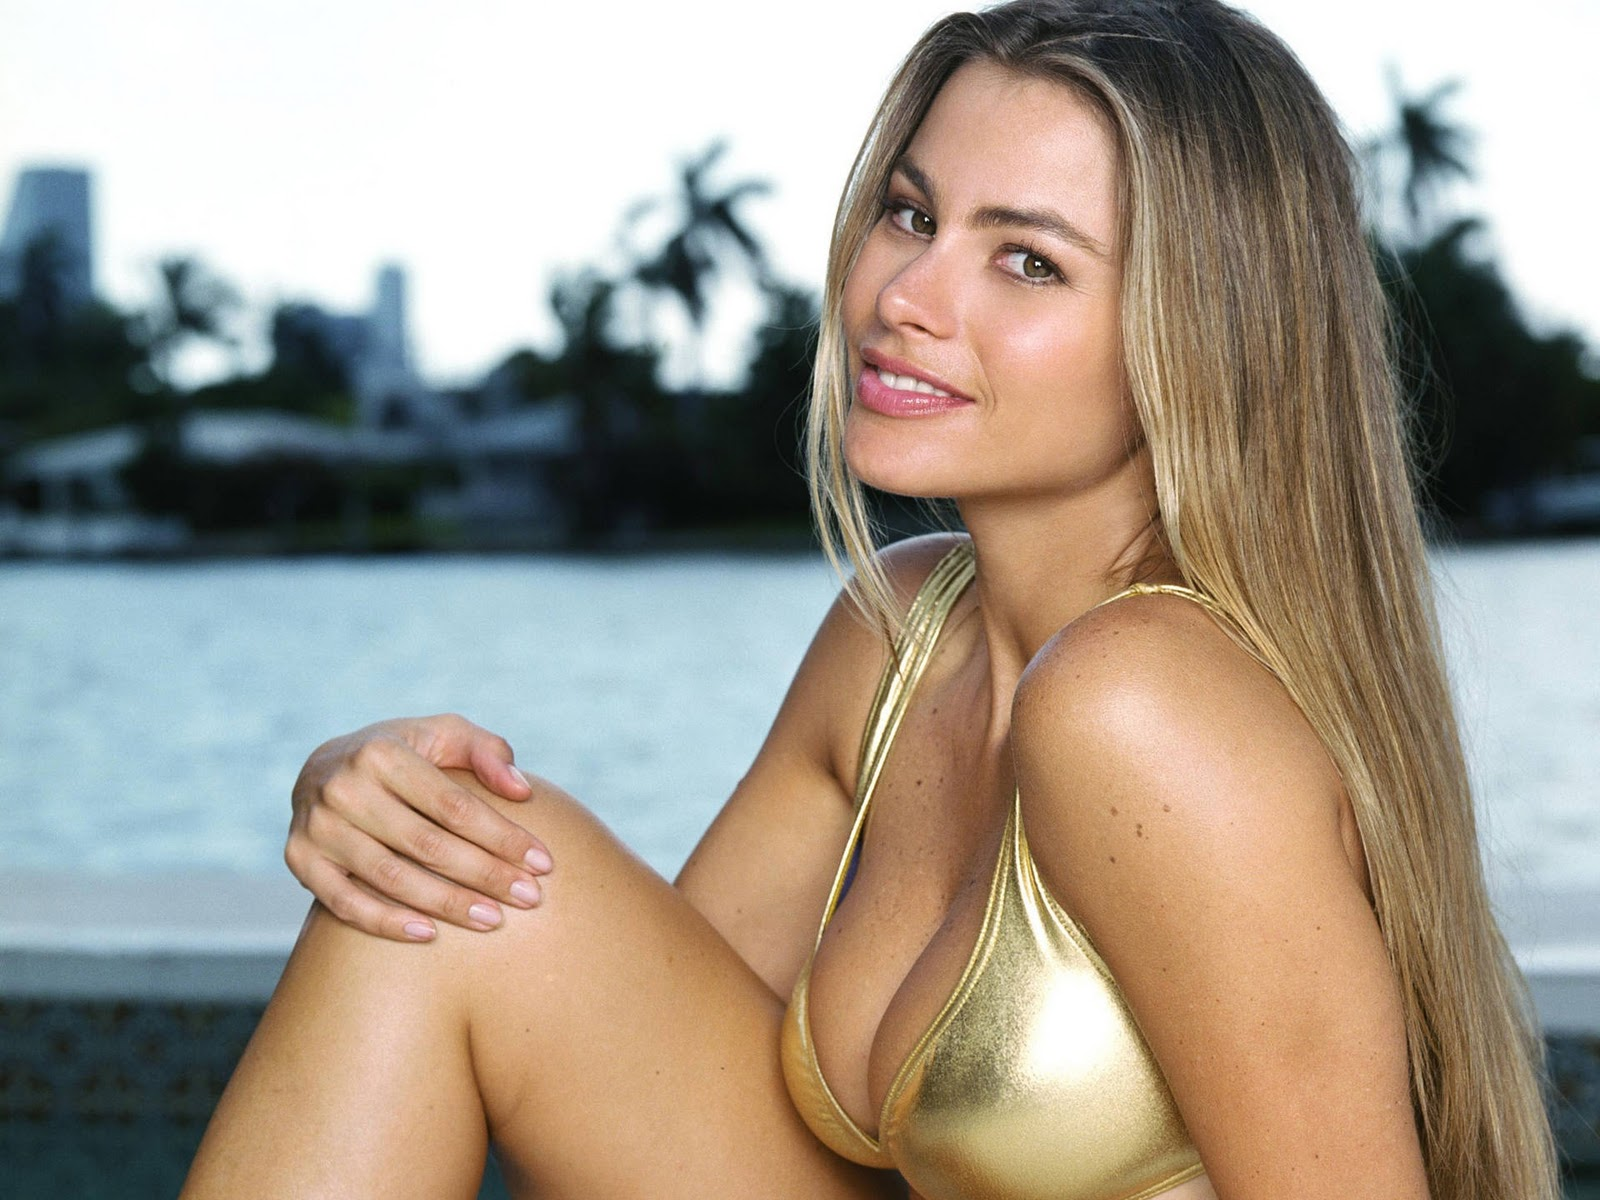 Valuable Sofia vergara blonde right!